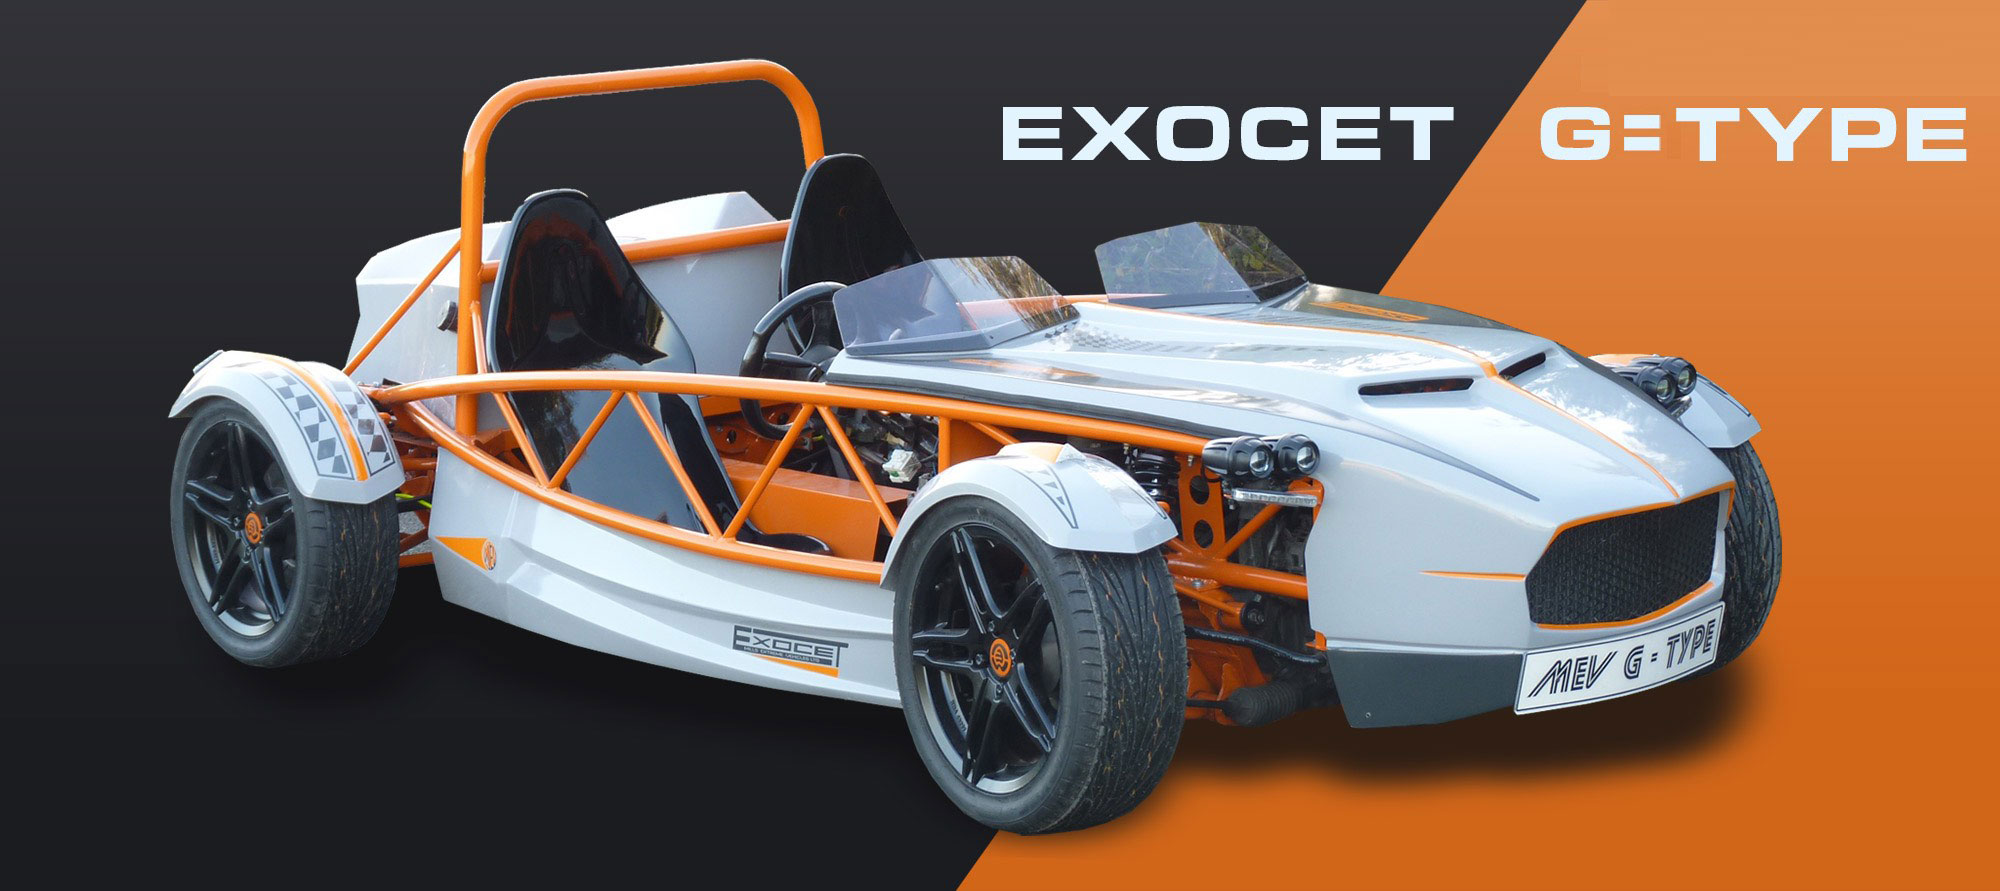 Kit Car Manufacturers >> Kit Car Manufacturer Mev Ltd